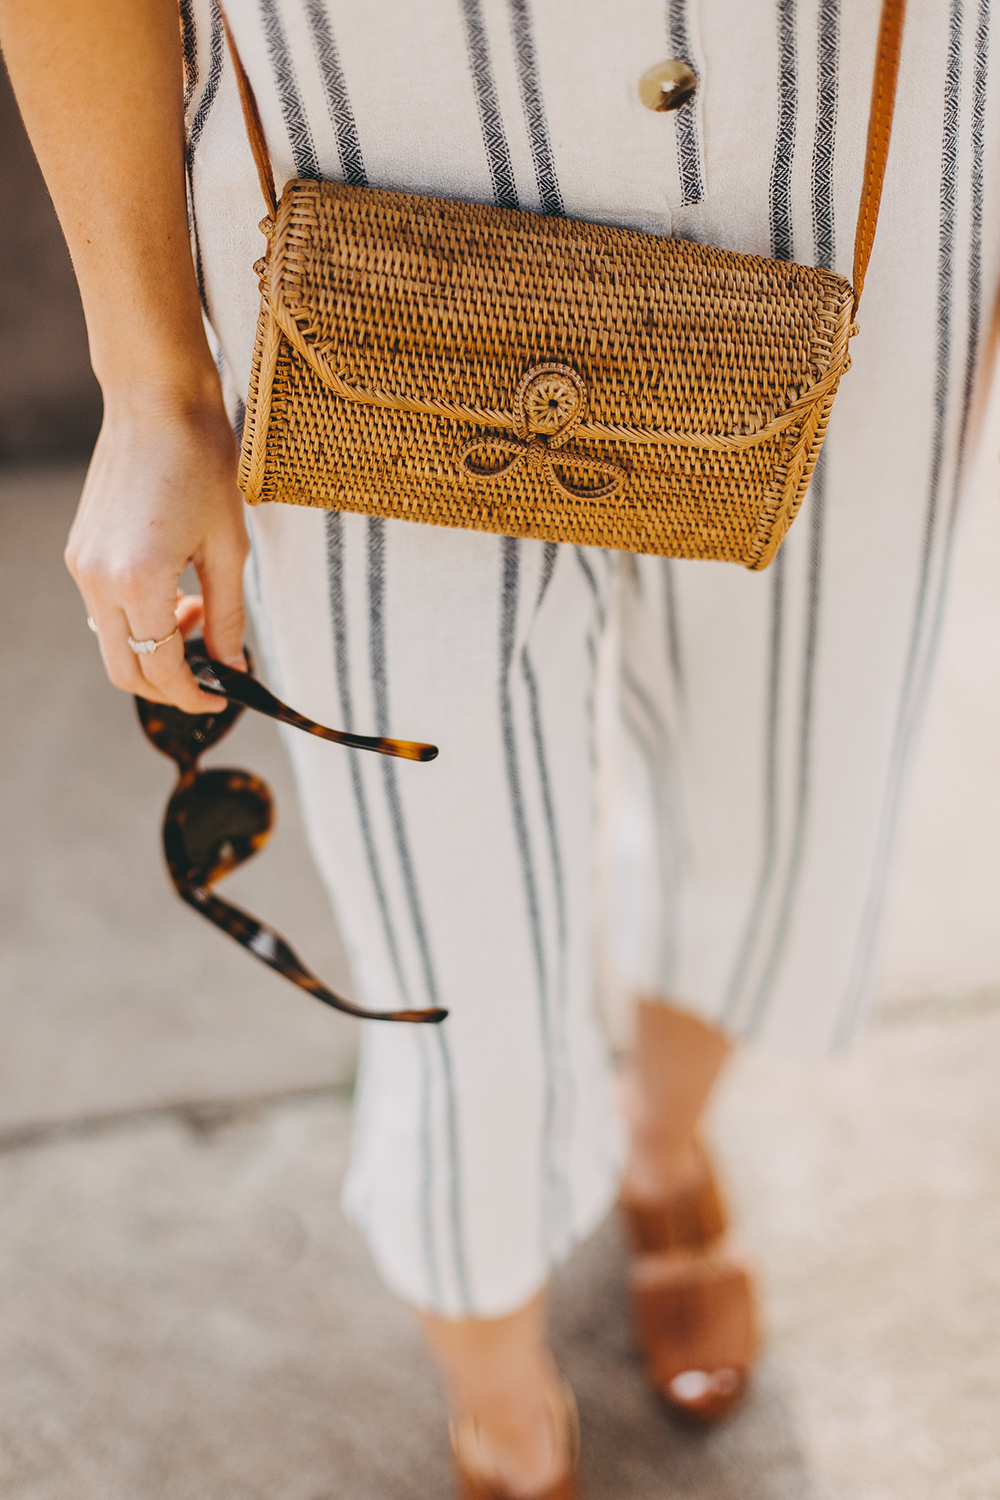 livvyland-blog-olivia-watson-austin-texas-fashion-lifestyle-style-blogger-urban-outfitters-striped-jumpsuit-outfit-rattan-handbag-3